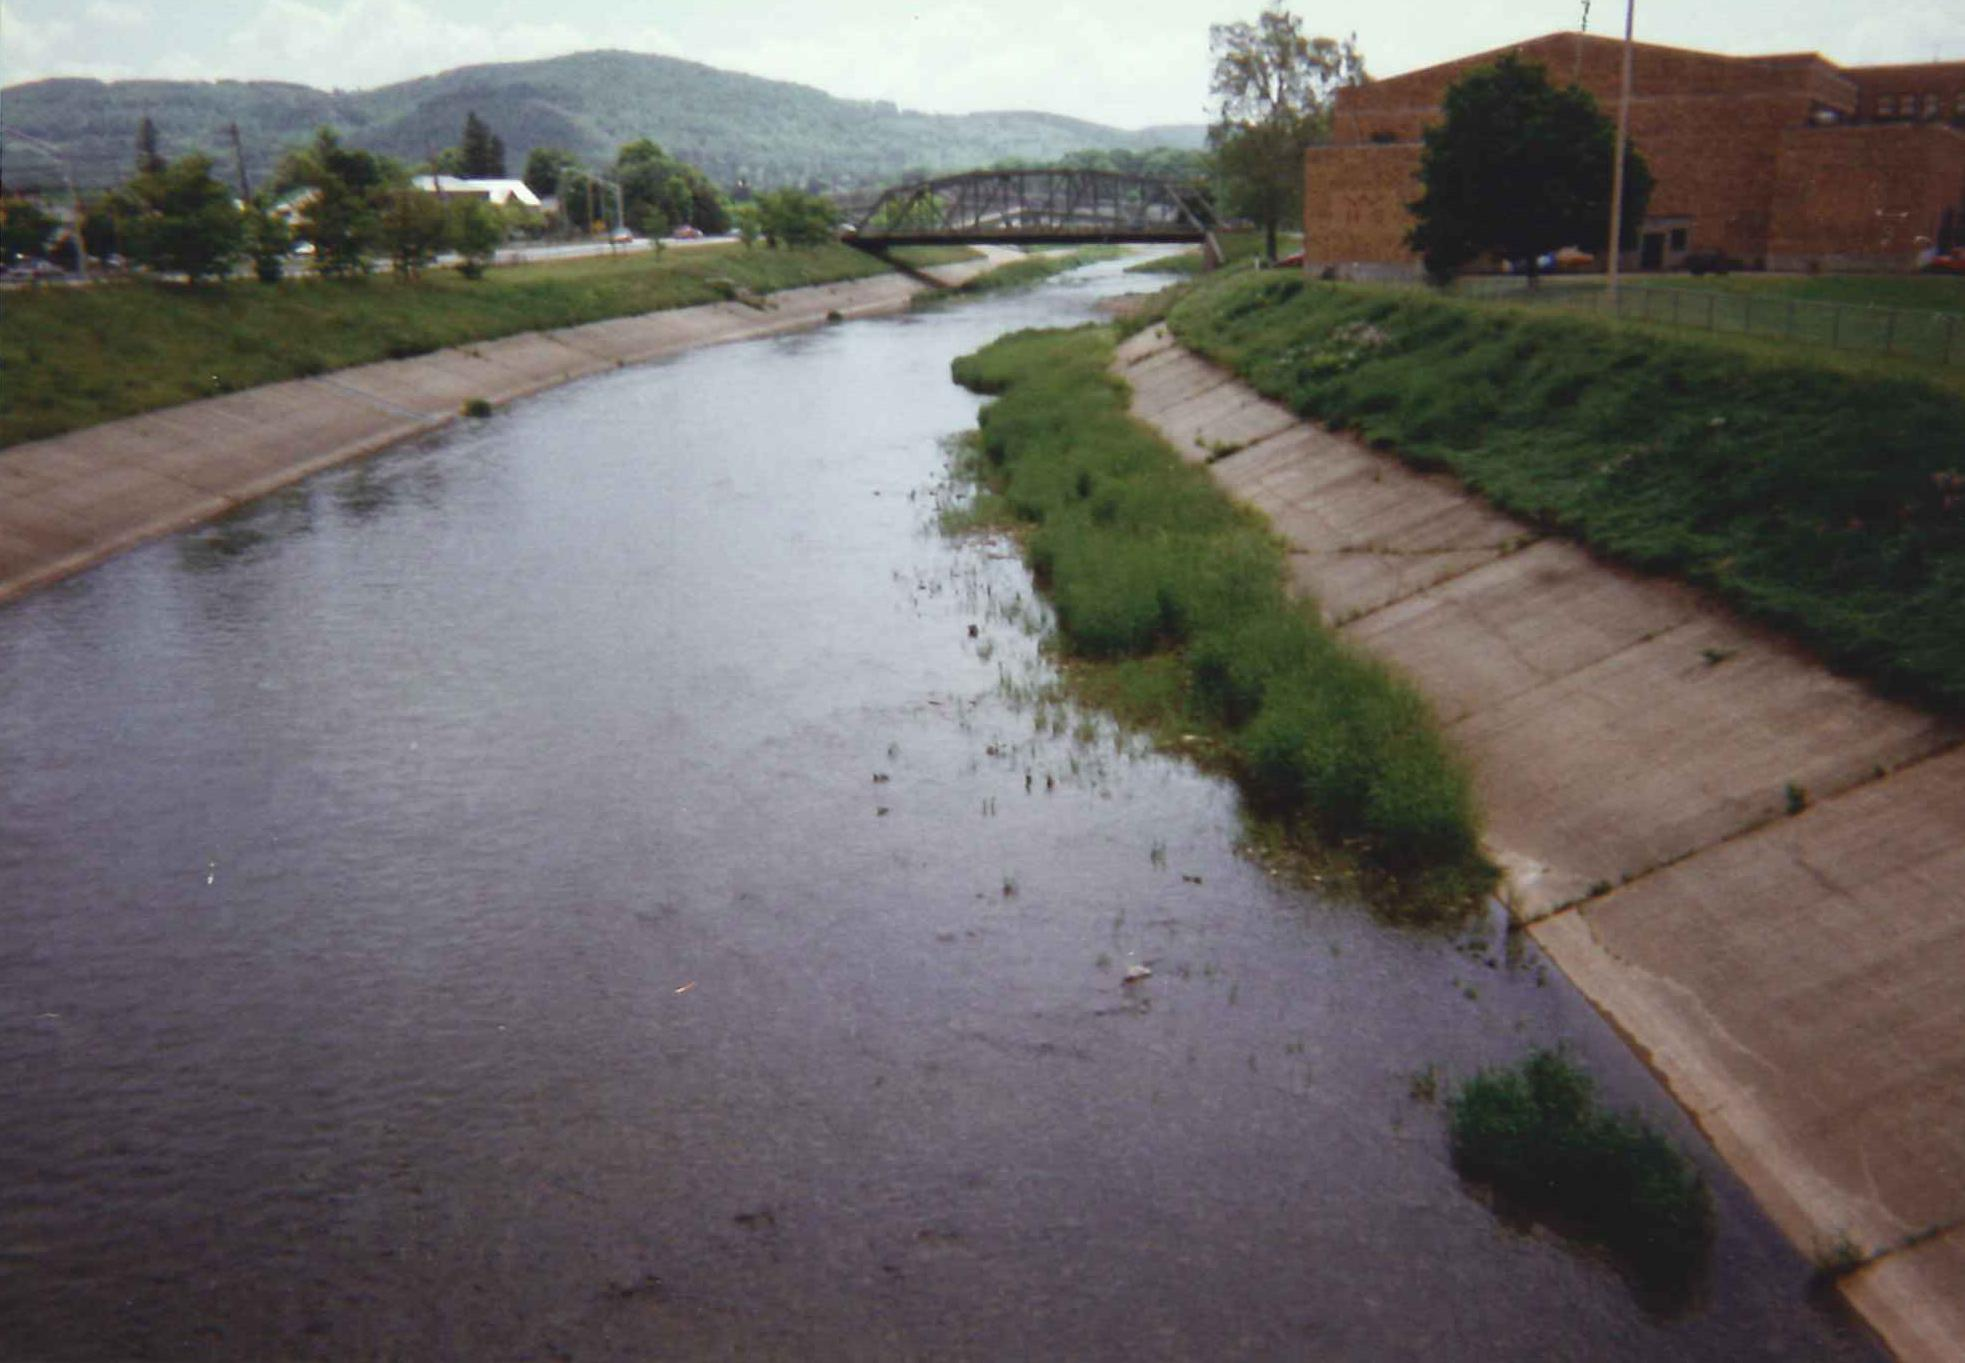 Photograph of the Genesee River at Wellsville, NY (WLLN6) looking upstream